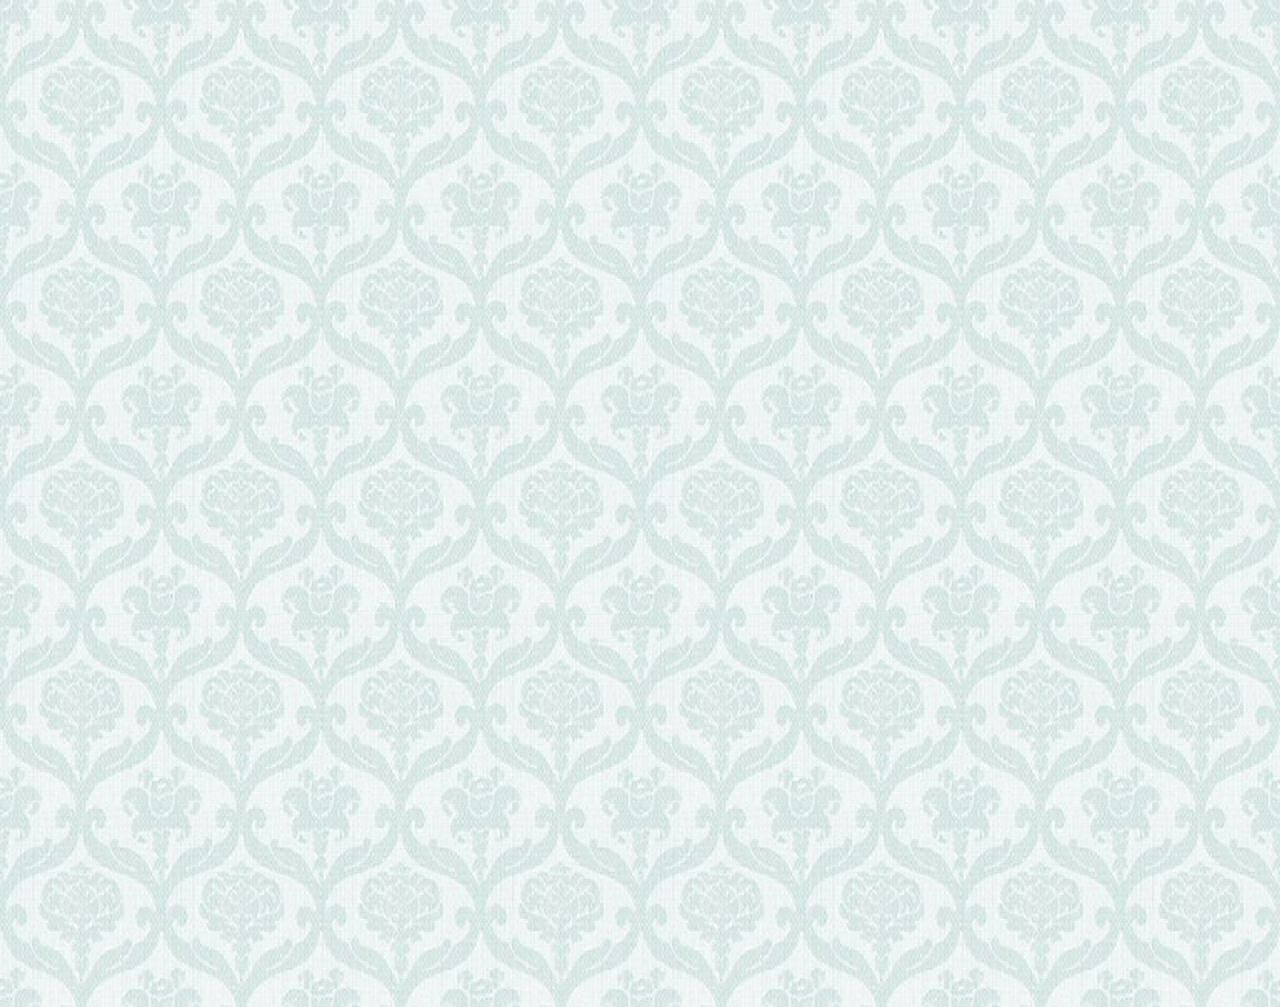 Gray Floral Pattern Backgrounds